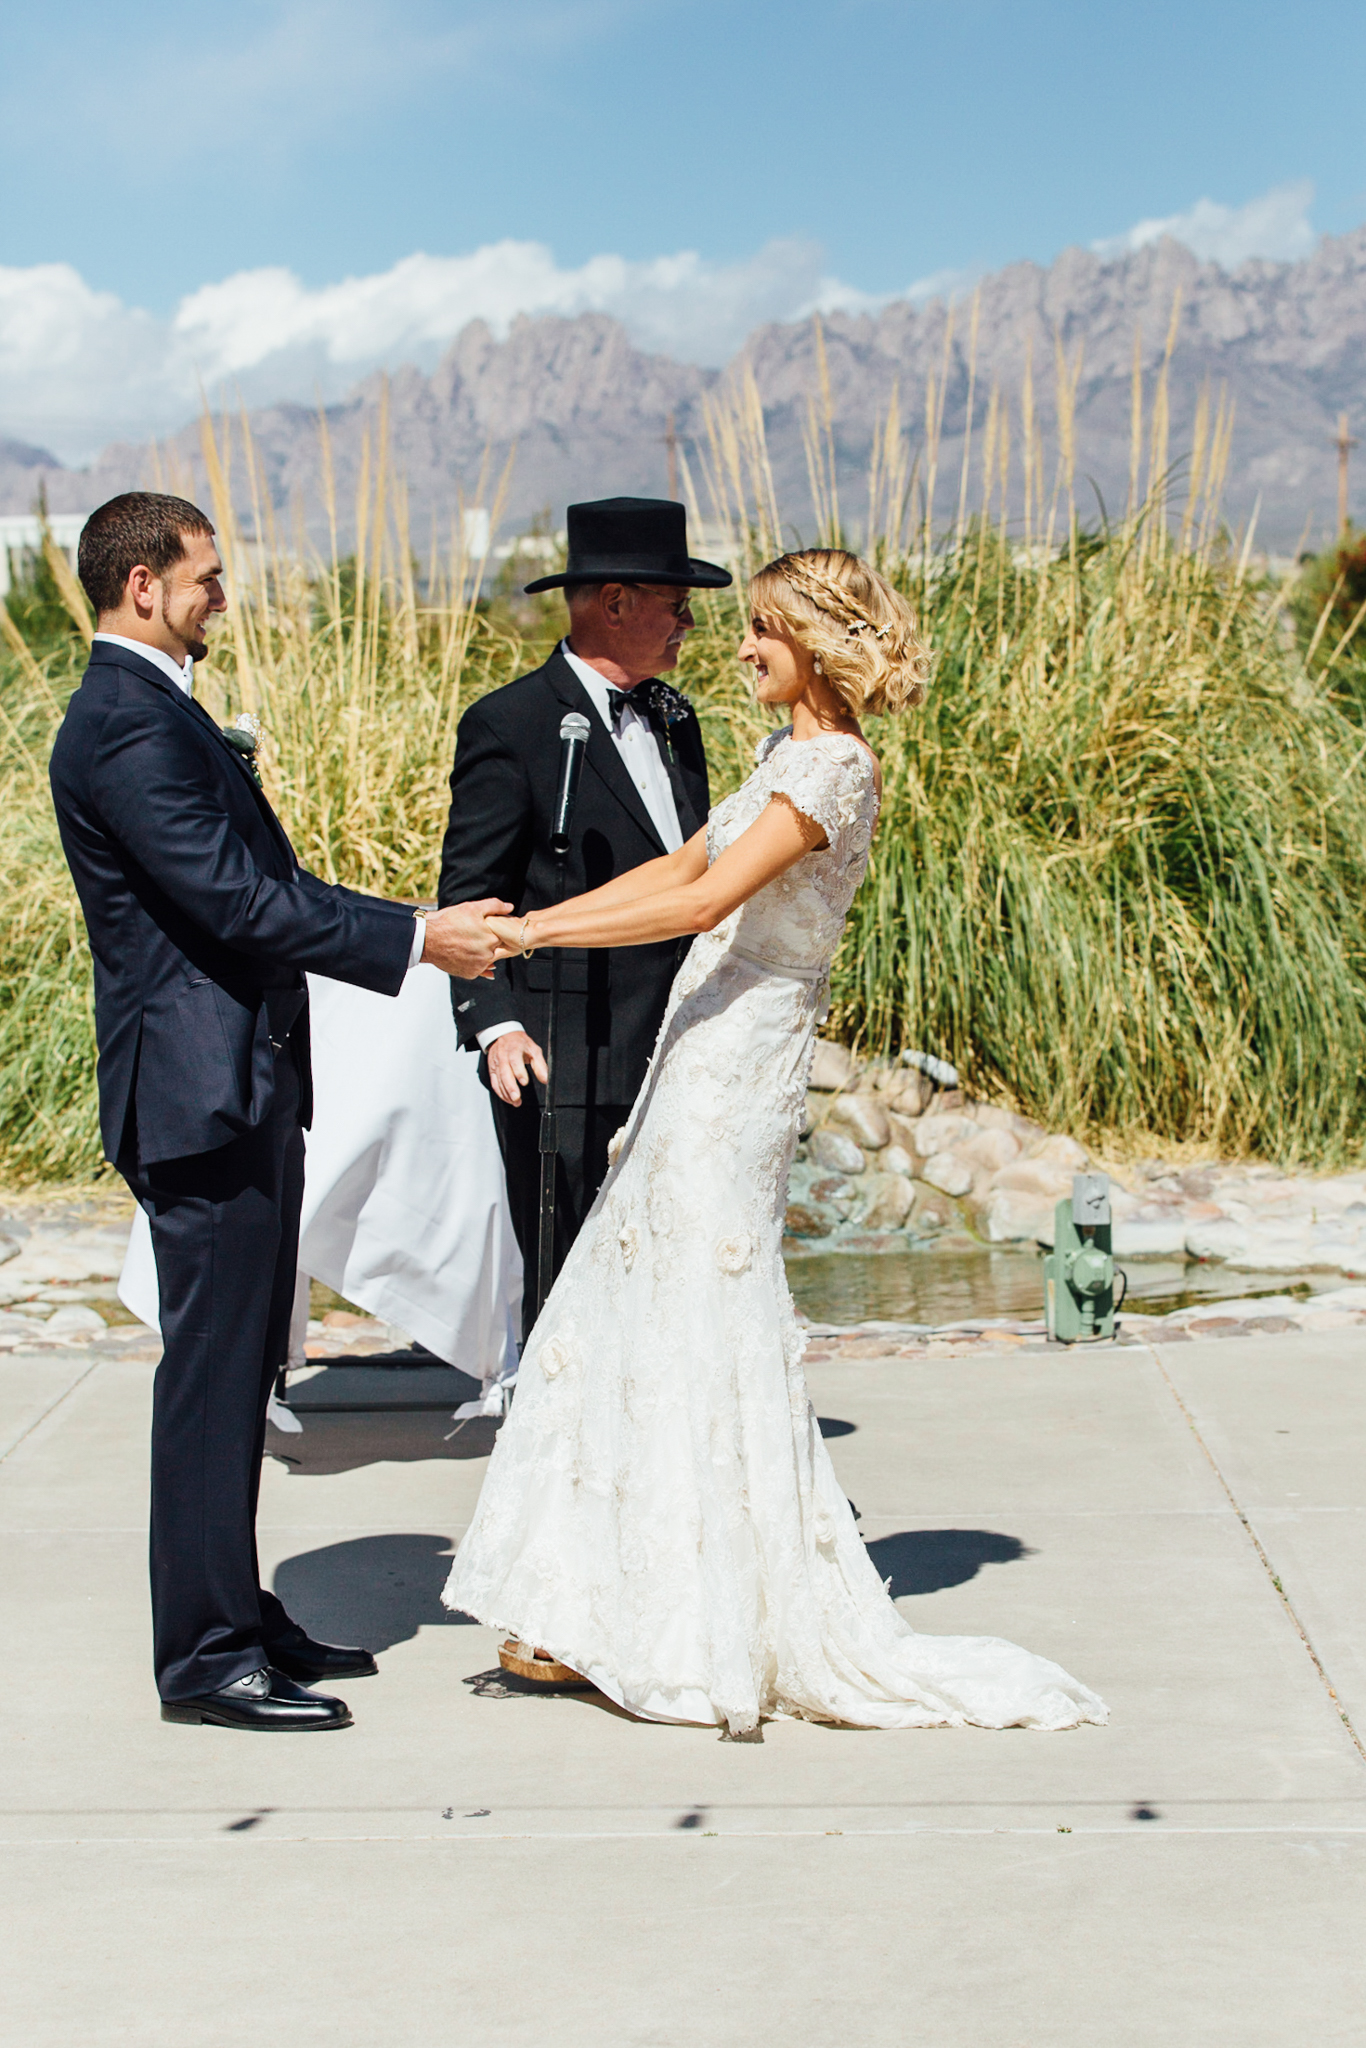 nm-farm-and-ranch-wedding-32.jpg